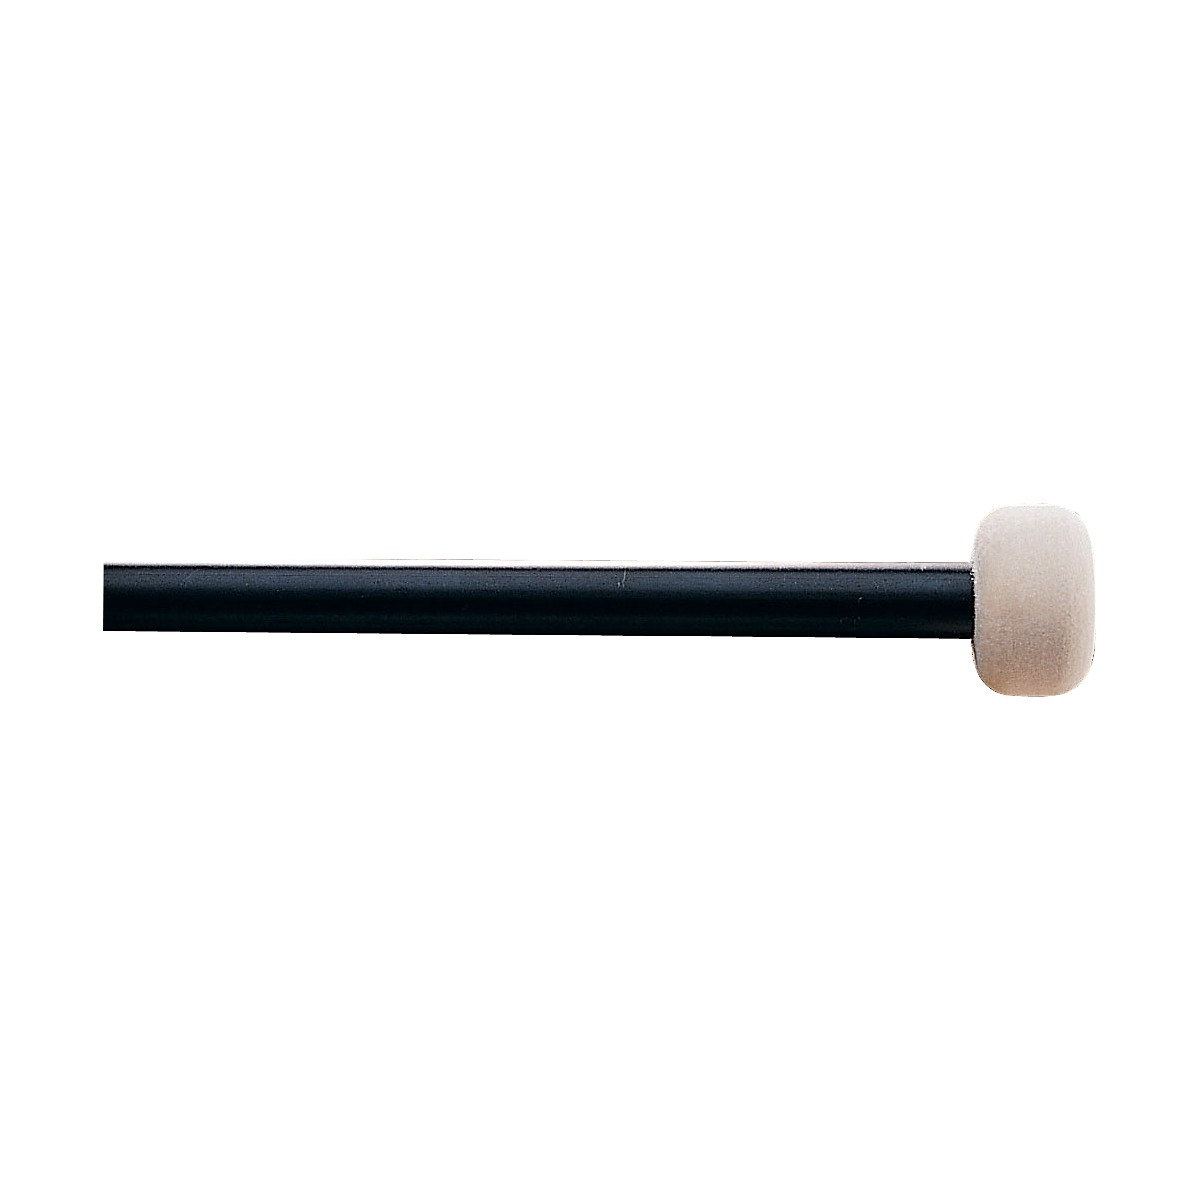 Promark Traditional Marching Tom Mallets M332T / 1-3/16 Rubber Ends